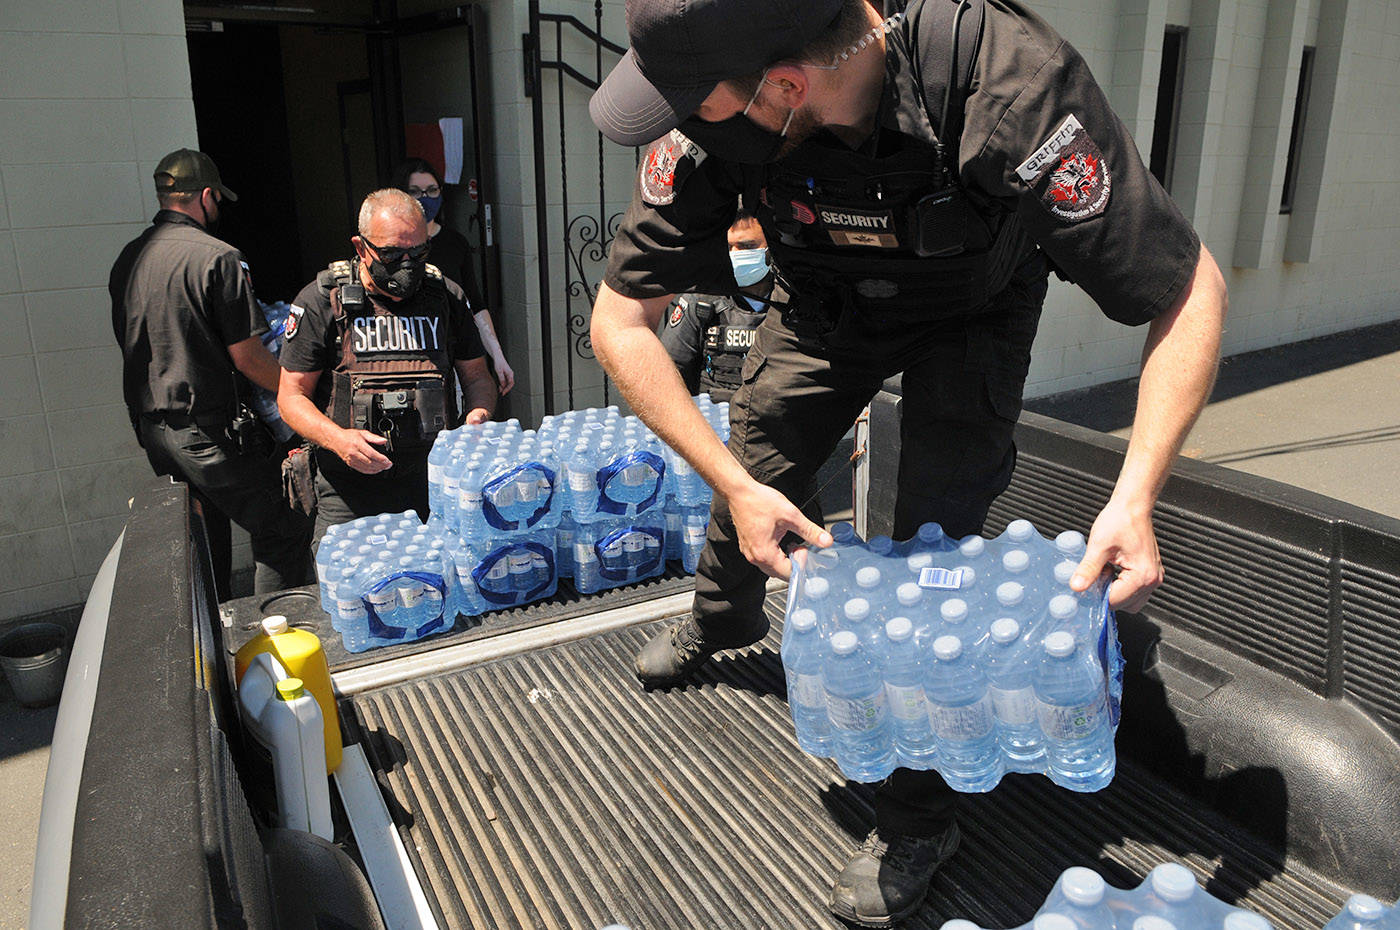 Cody Mendel (foreground) and fellow Griffin Security staff unload donations of bottled water that will be handed out to Chilliwack's homeless community and others. They are seen here on Tuesday, June 22, 2021. (Jenna Hauck/ Chilliwack Progress)